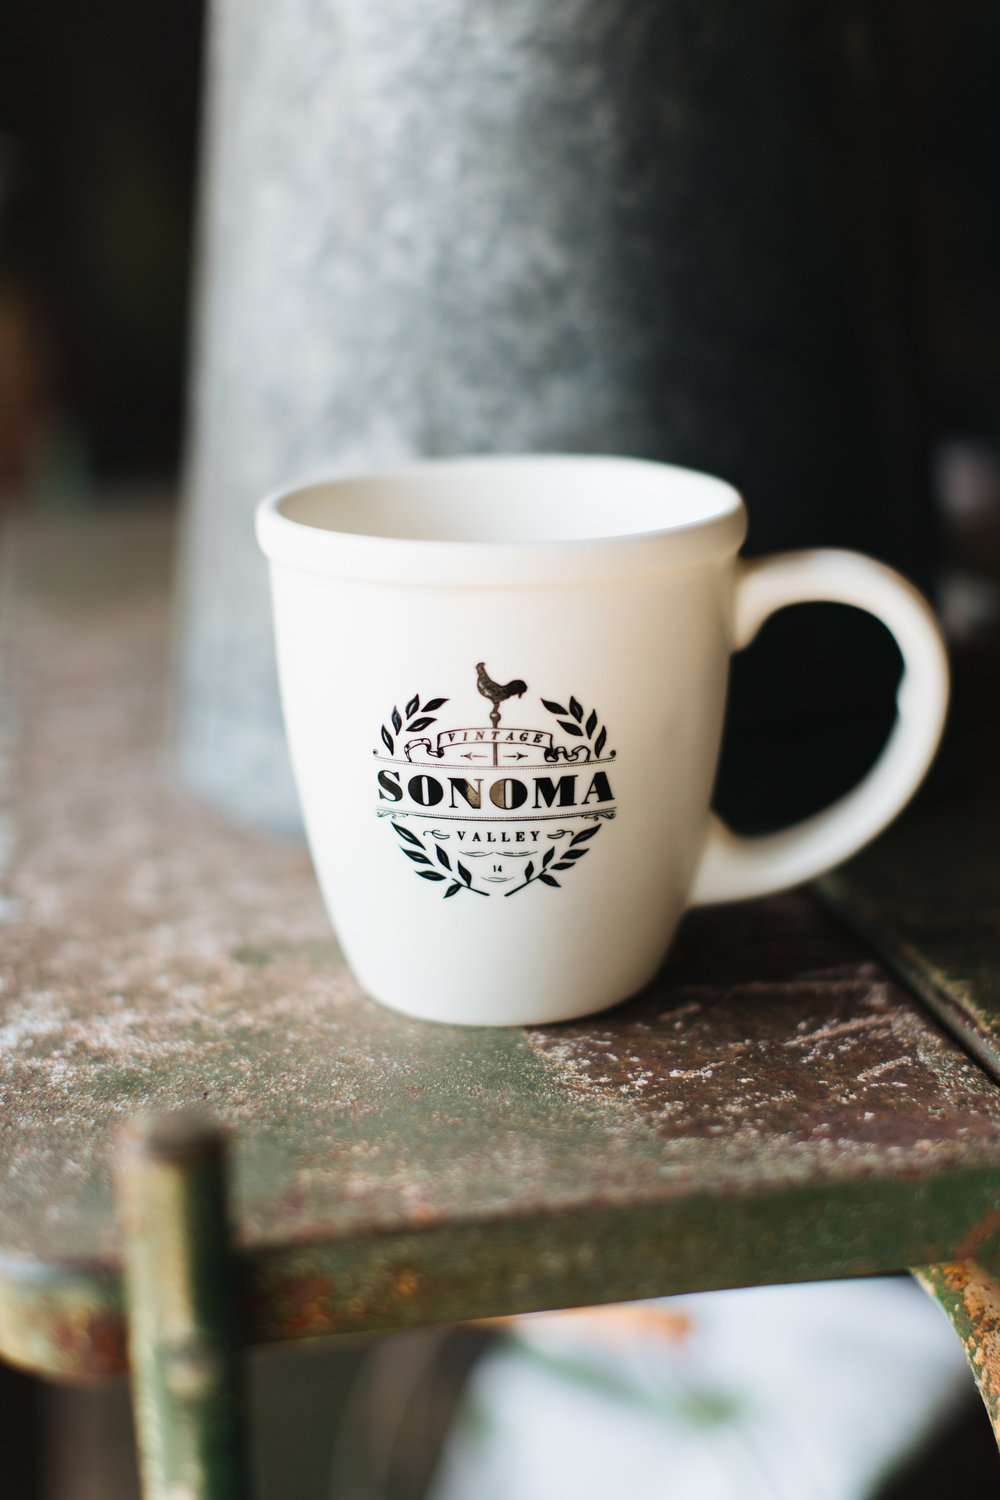 Sonoma Mug to Benefit Victims of The North Bay Fires | chateausonoma.com